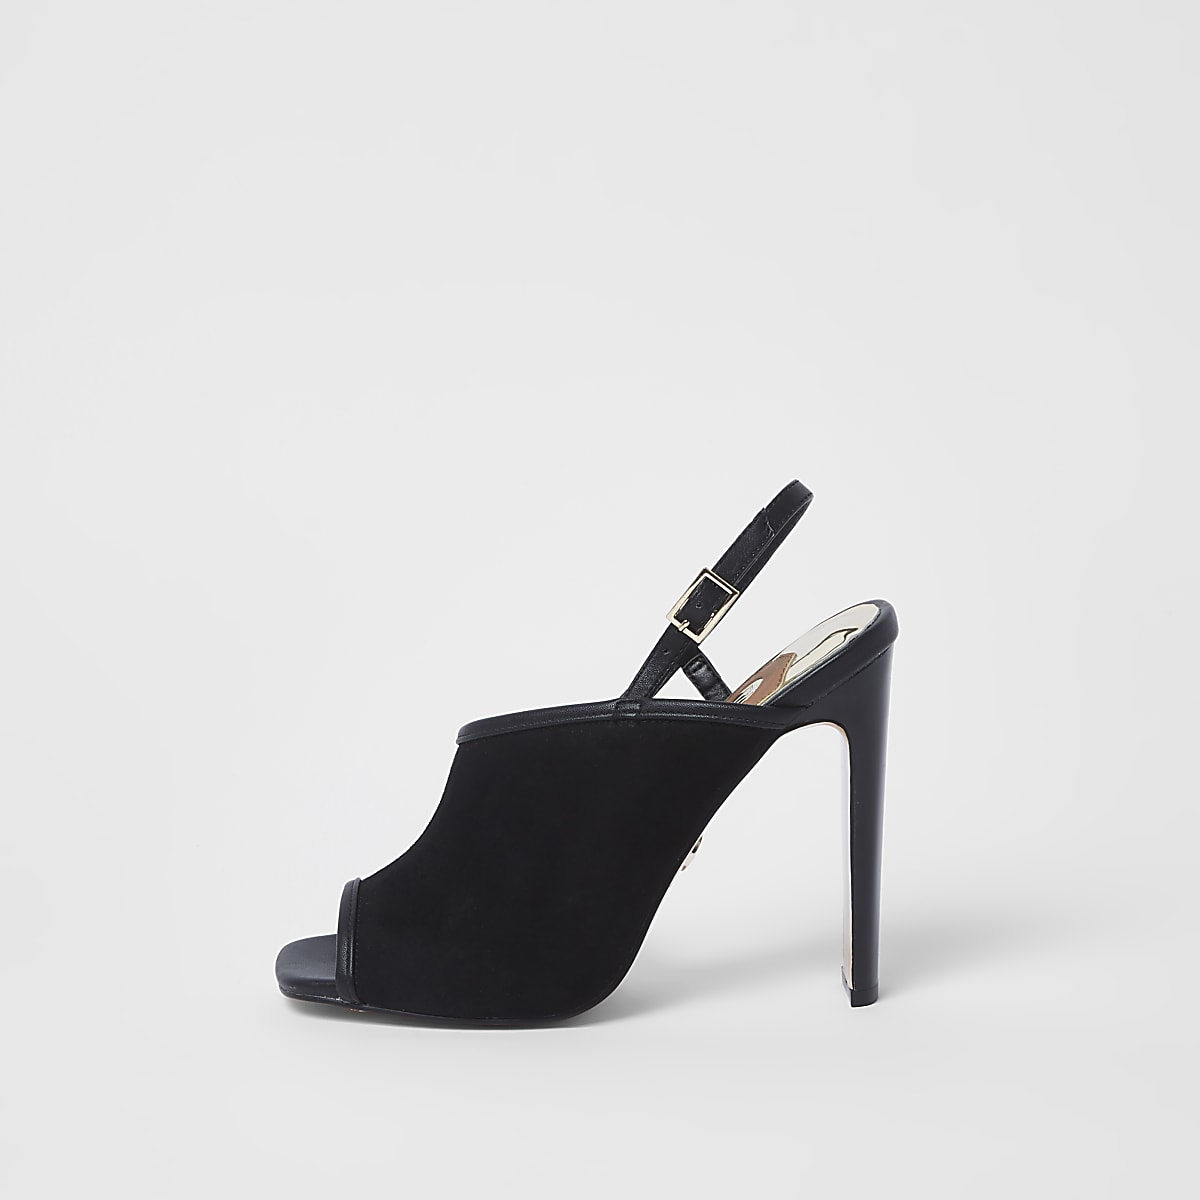 Black asymmetric slim heel shoes